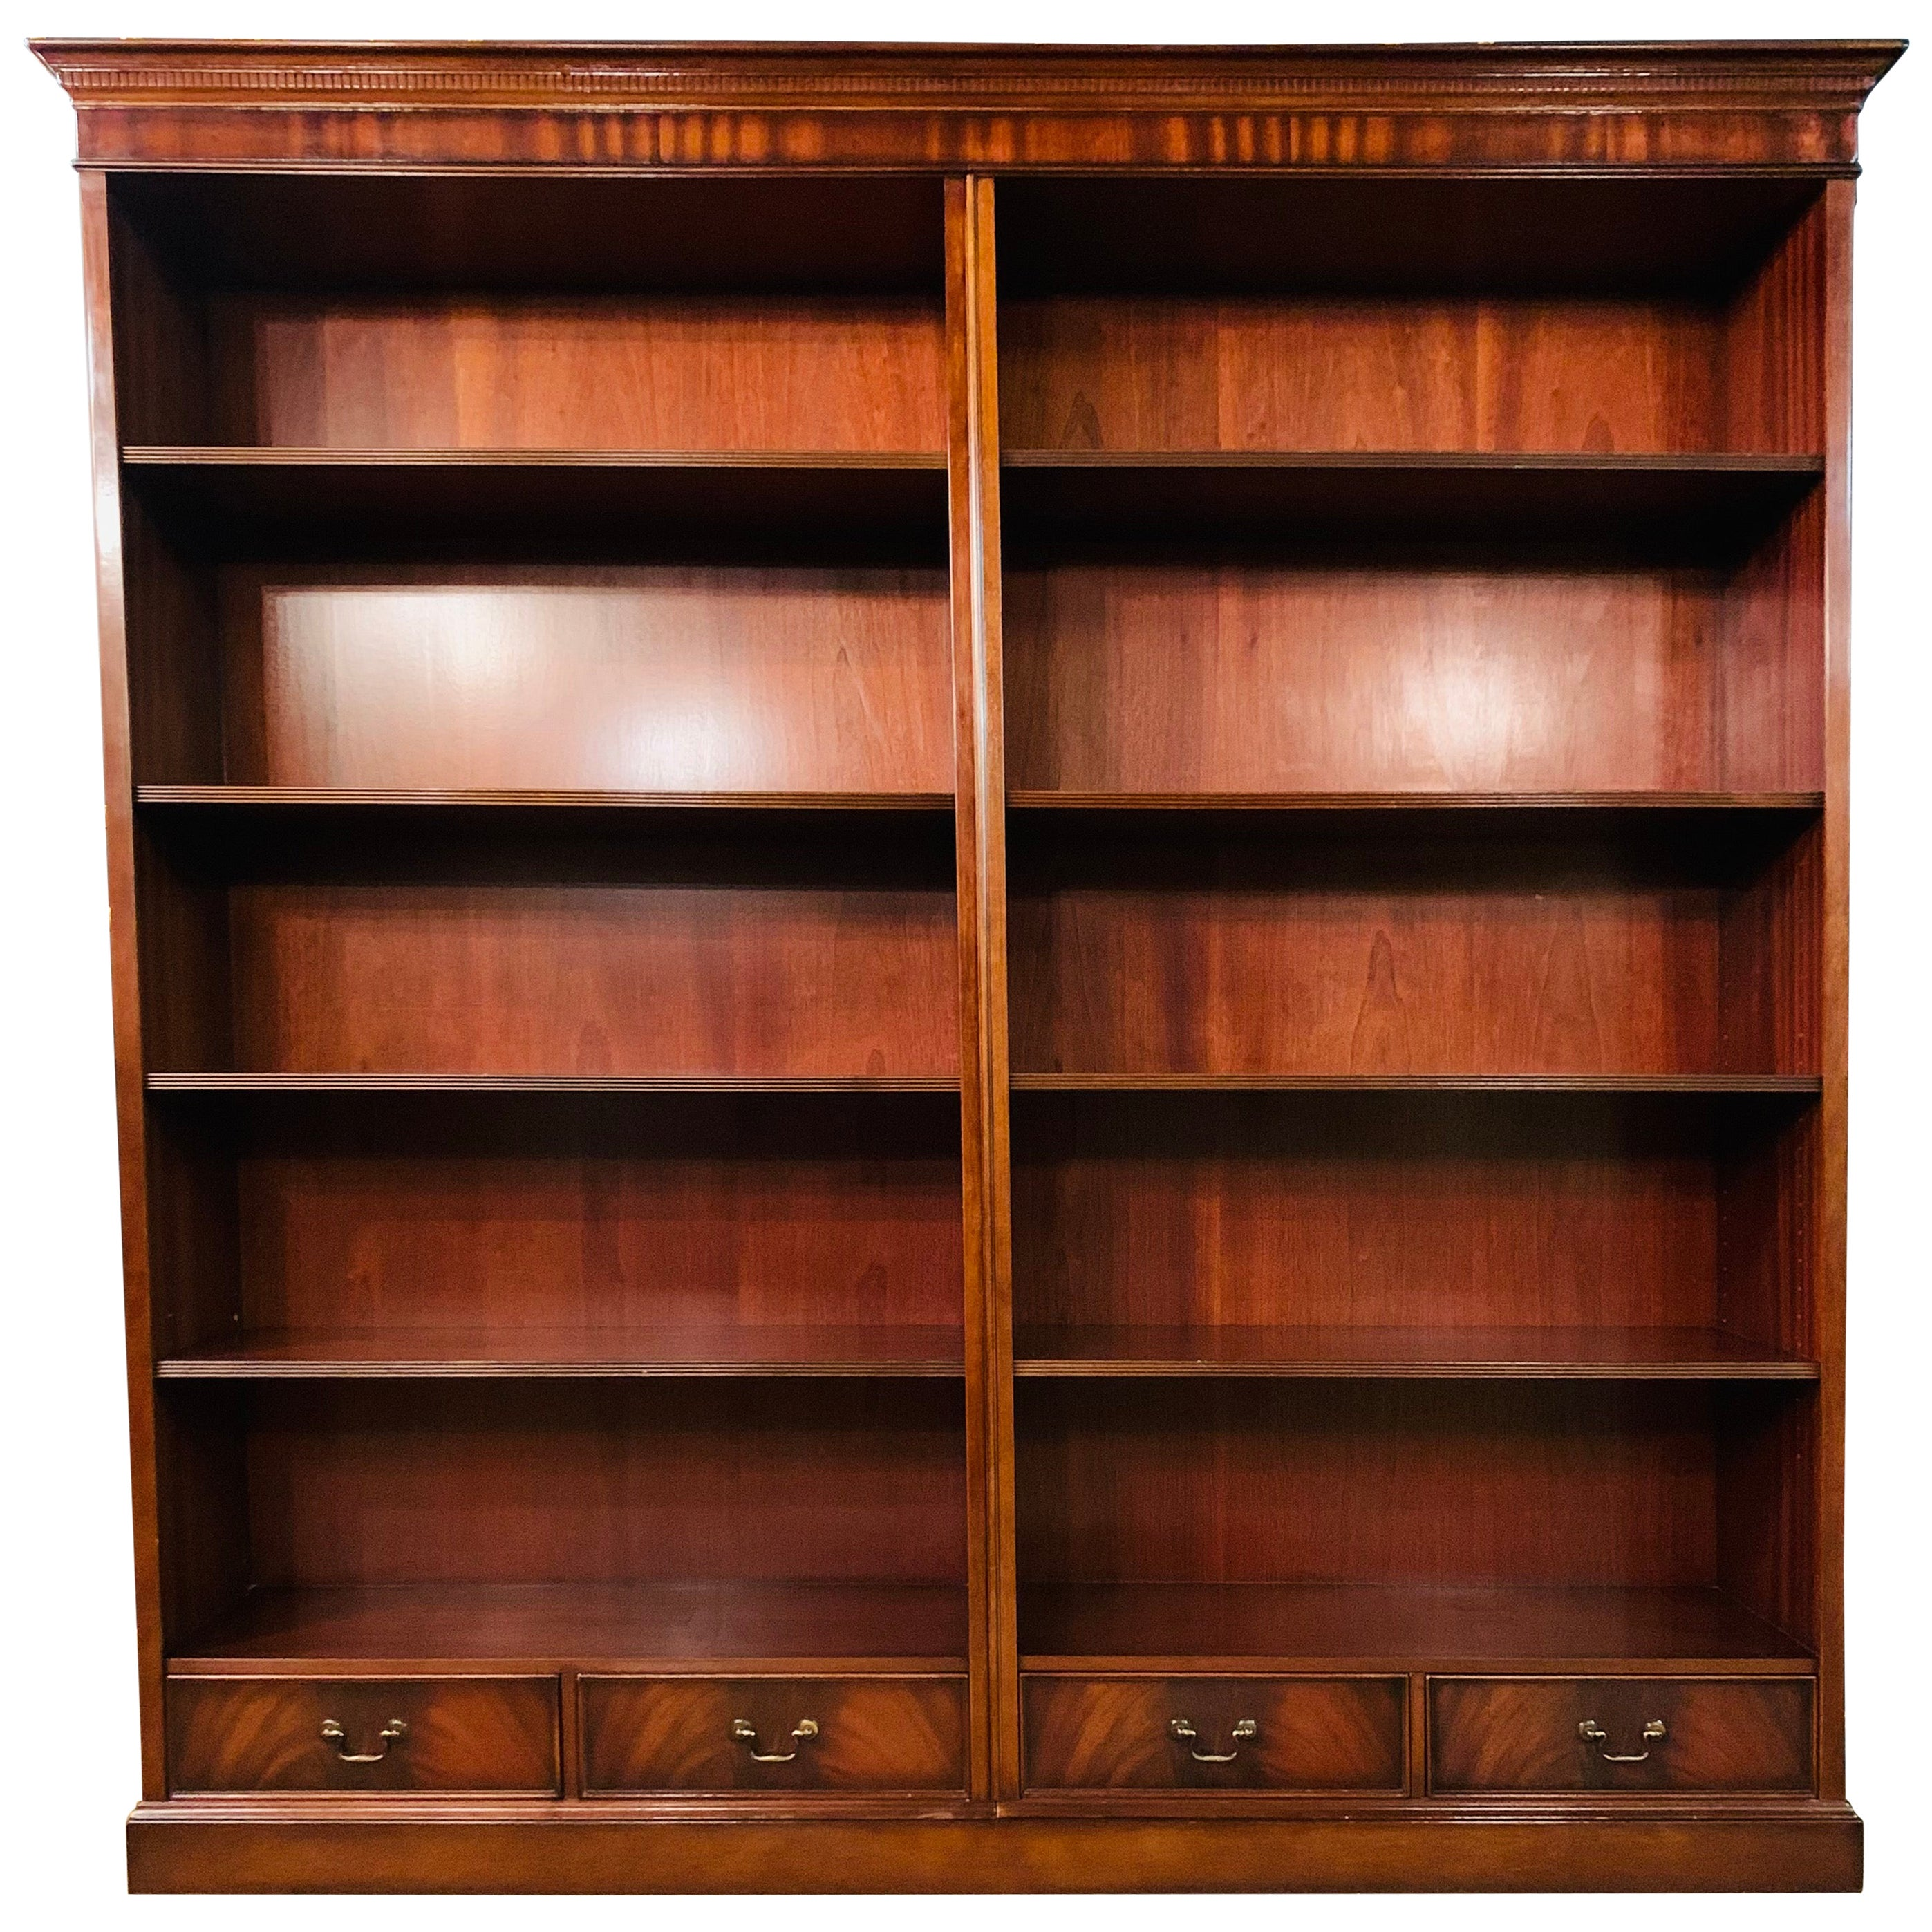 Vintage Stained Mahogany Double Bank Open Library Bookcase / Bookshelf